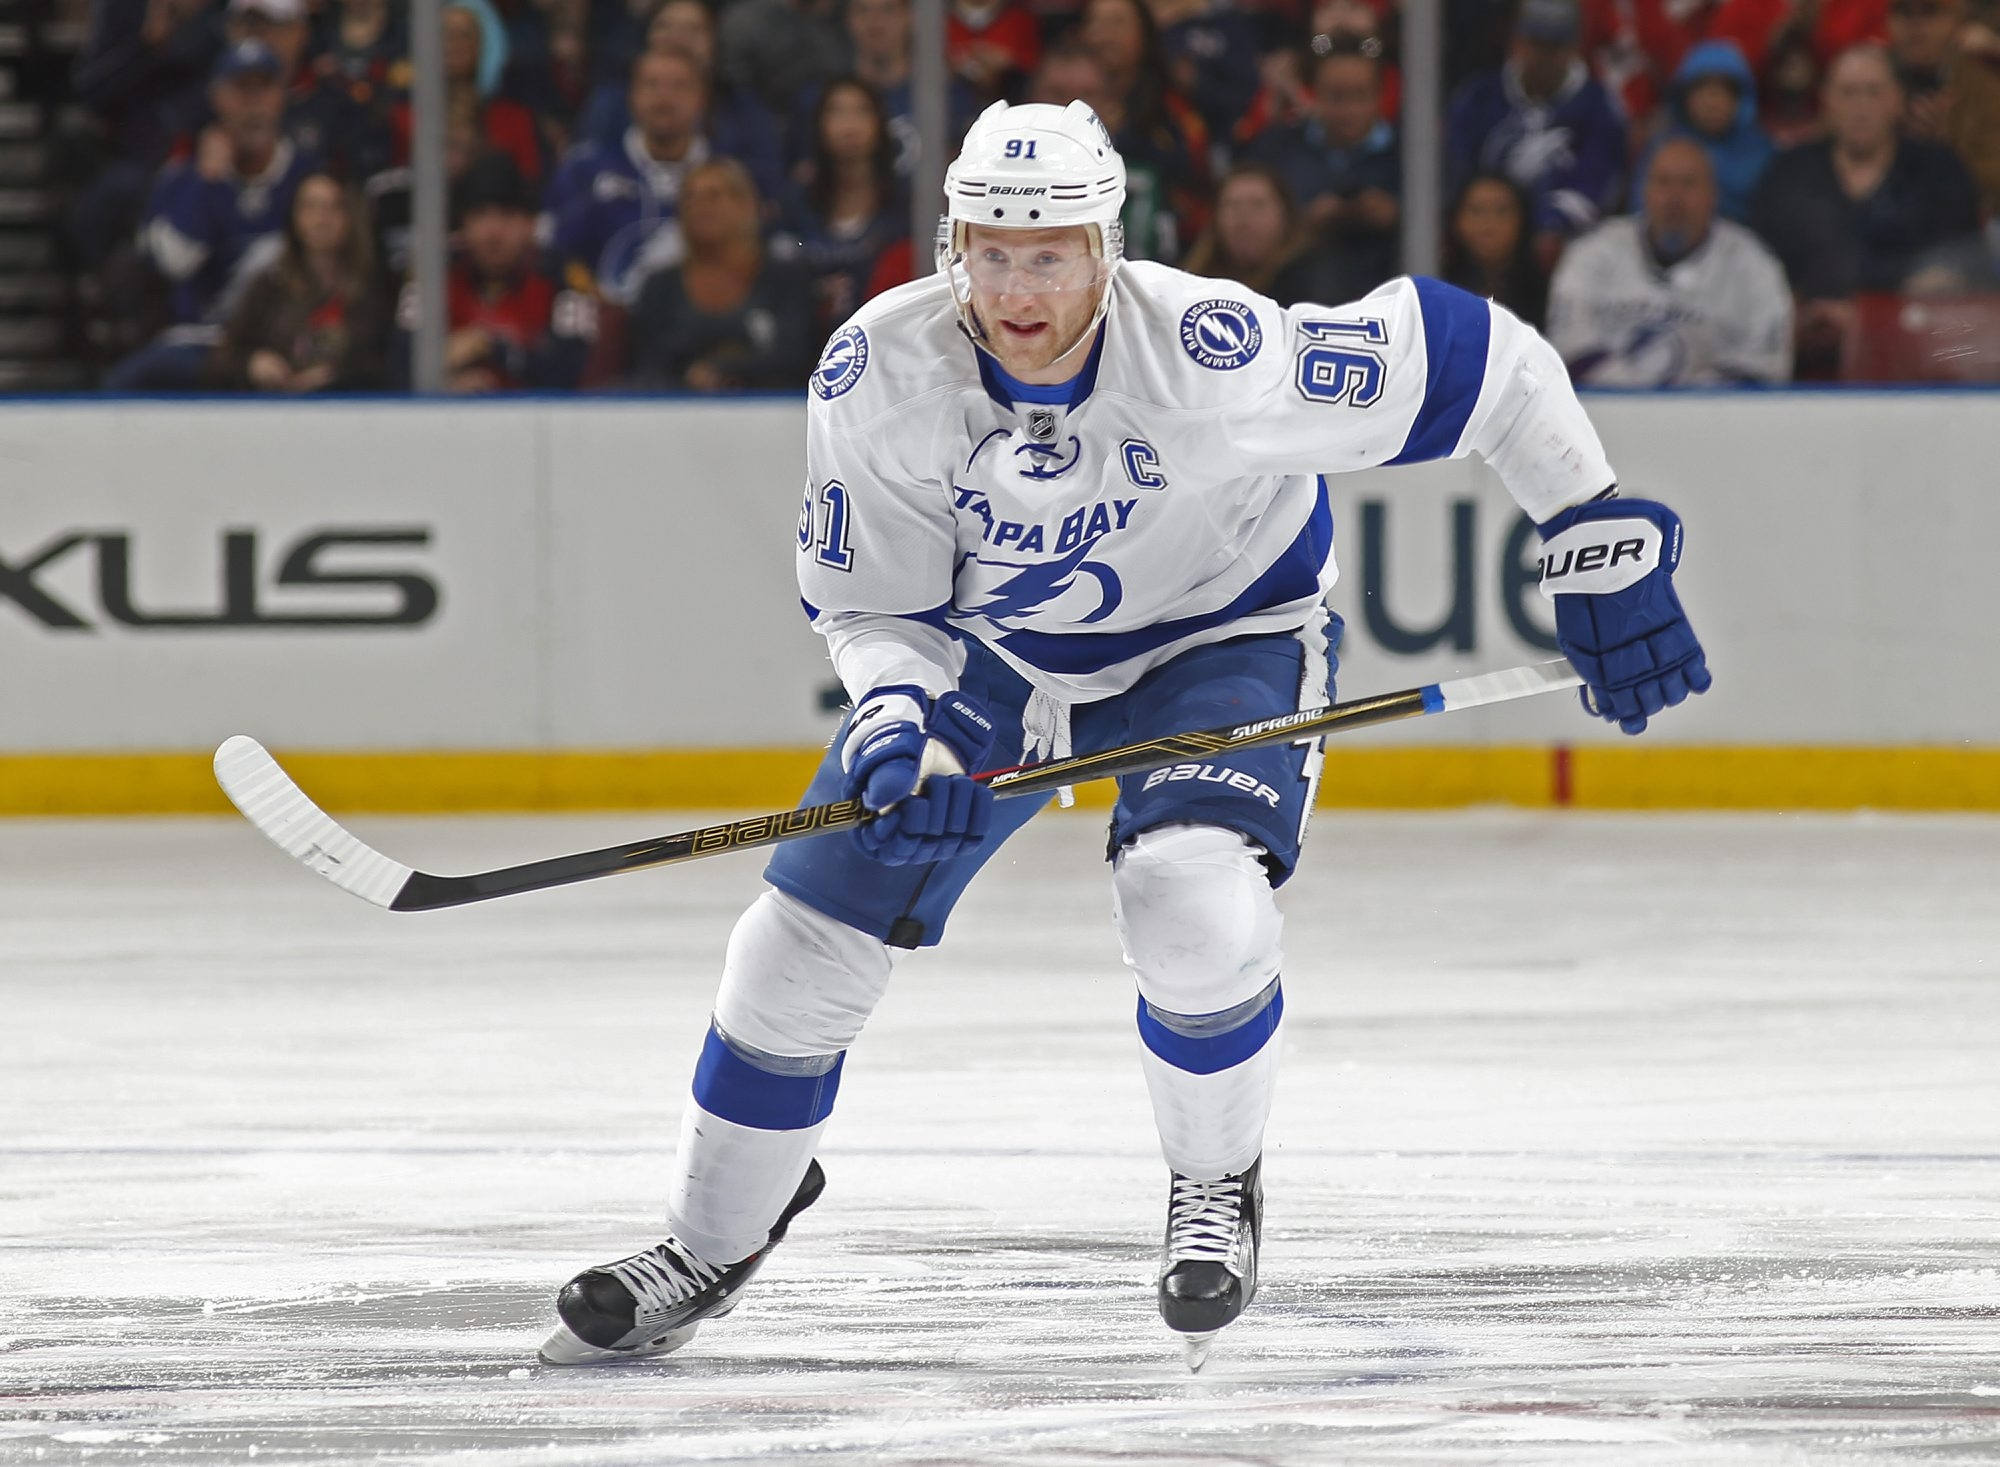 SUNRISE, FL - JANUARY 23: Steven Stamkos #91 of the Tampa Bay Lightning rushes up ice during a power play against the Florida Panthers at the BB&T Center on January 23, 2016 in Sunrise, Florida. The Panthers defeated the Lightning 5-2. (Photo by Joel Auerbach/Getty Images)